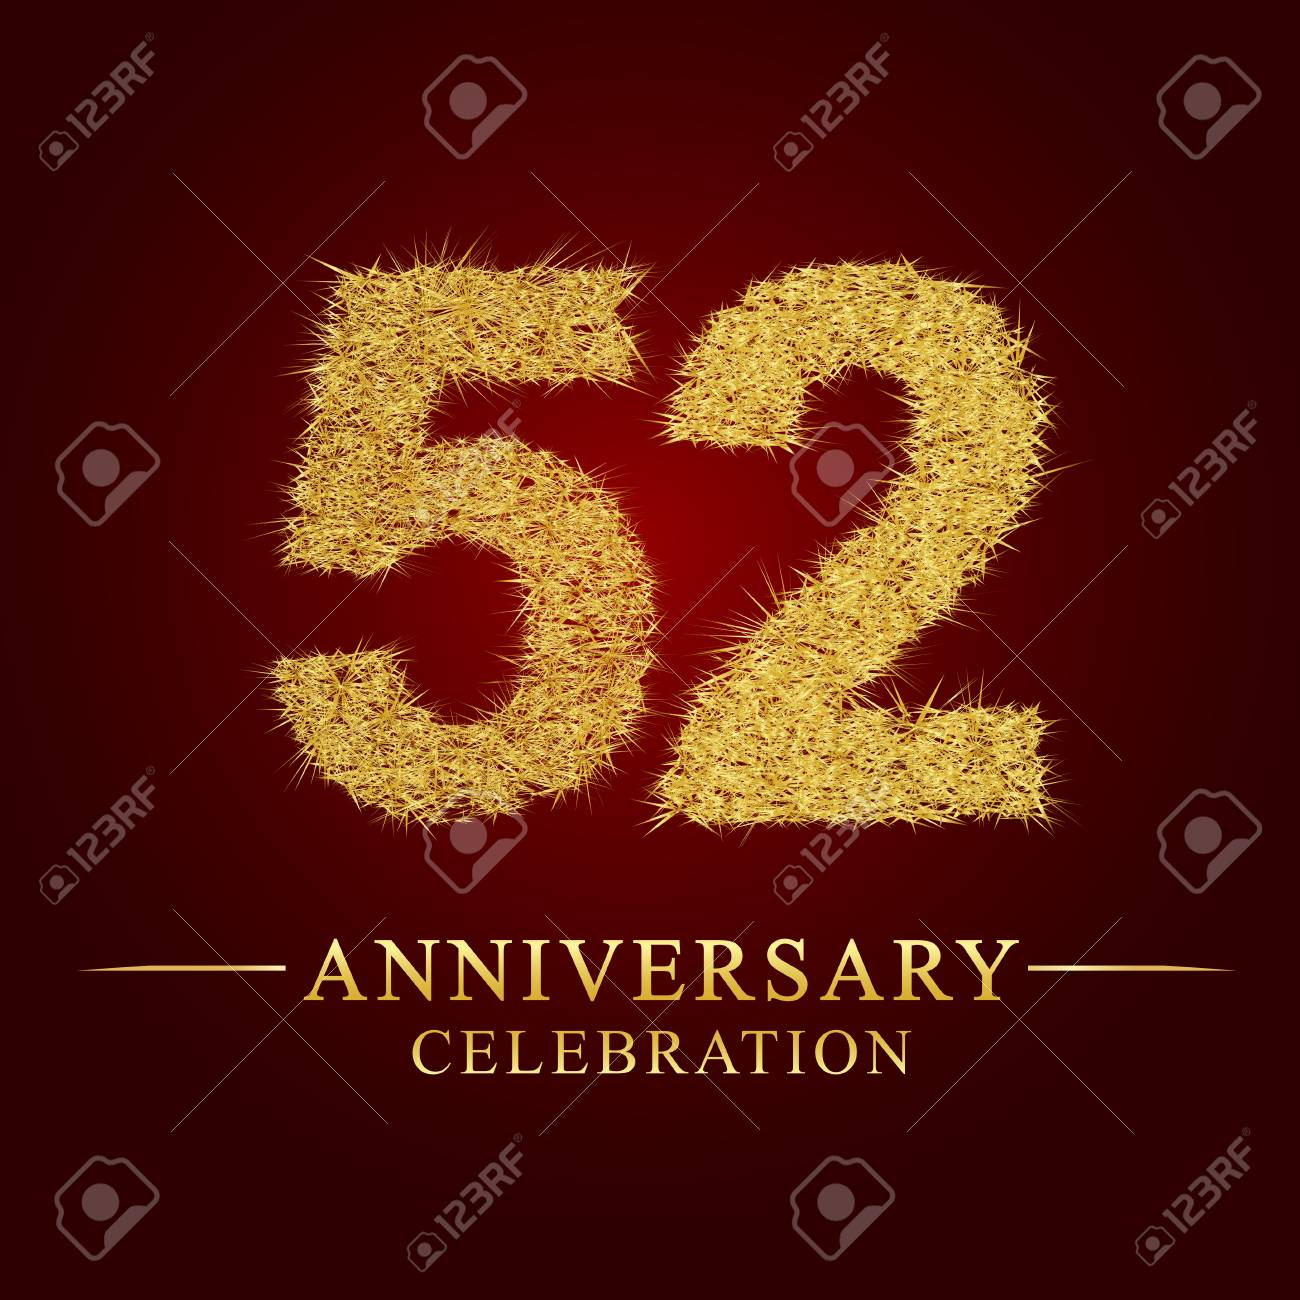 52 years anniversary celebration logotype. Logo gold pile of dry rice on red background. Number nest and fuzz gold foil. - 106166967